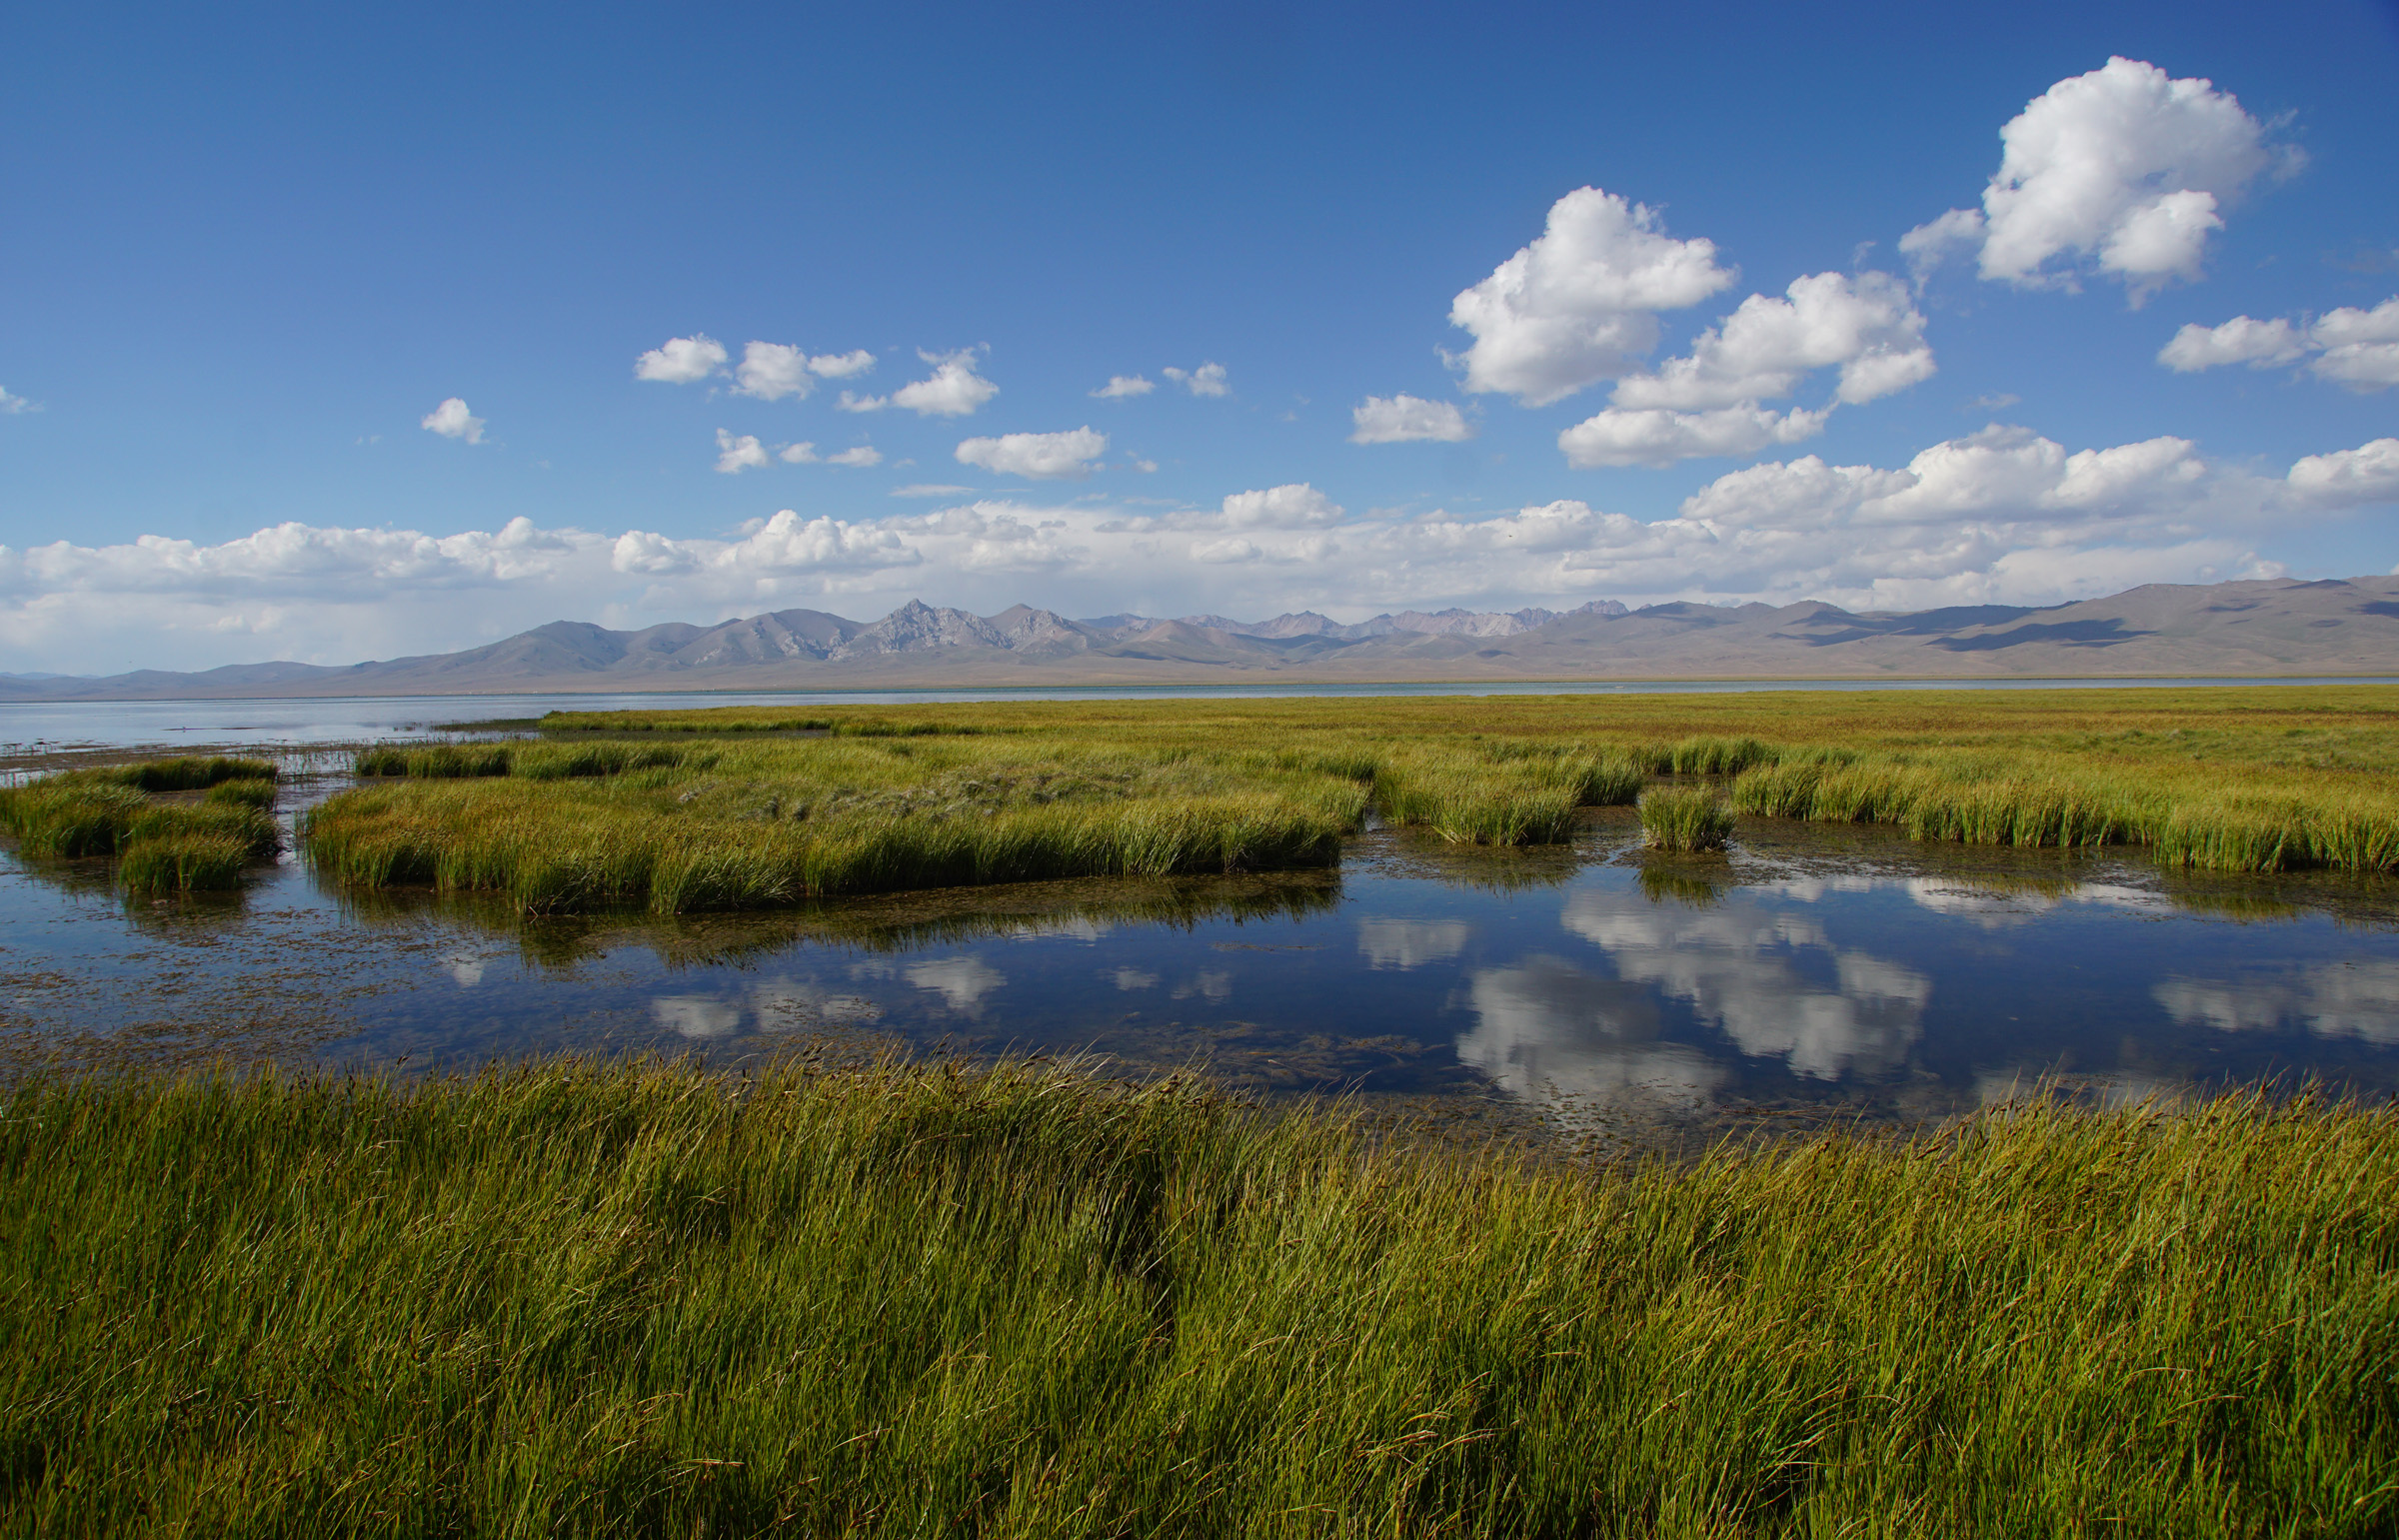 Song-Kul, Kyrgyzstan - by Charles Roffey